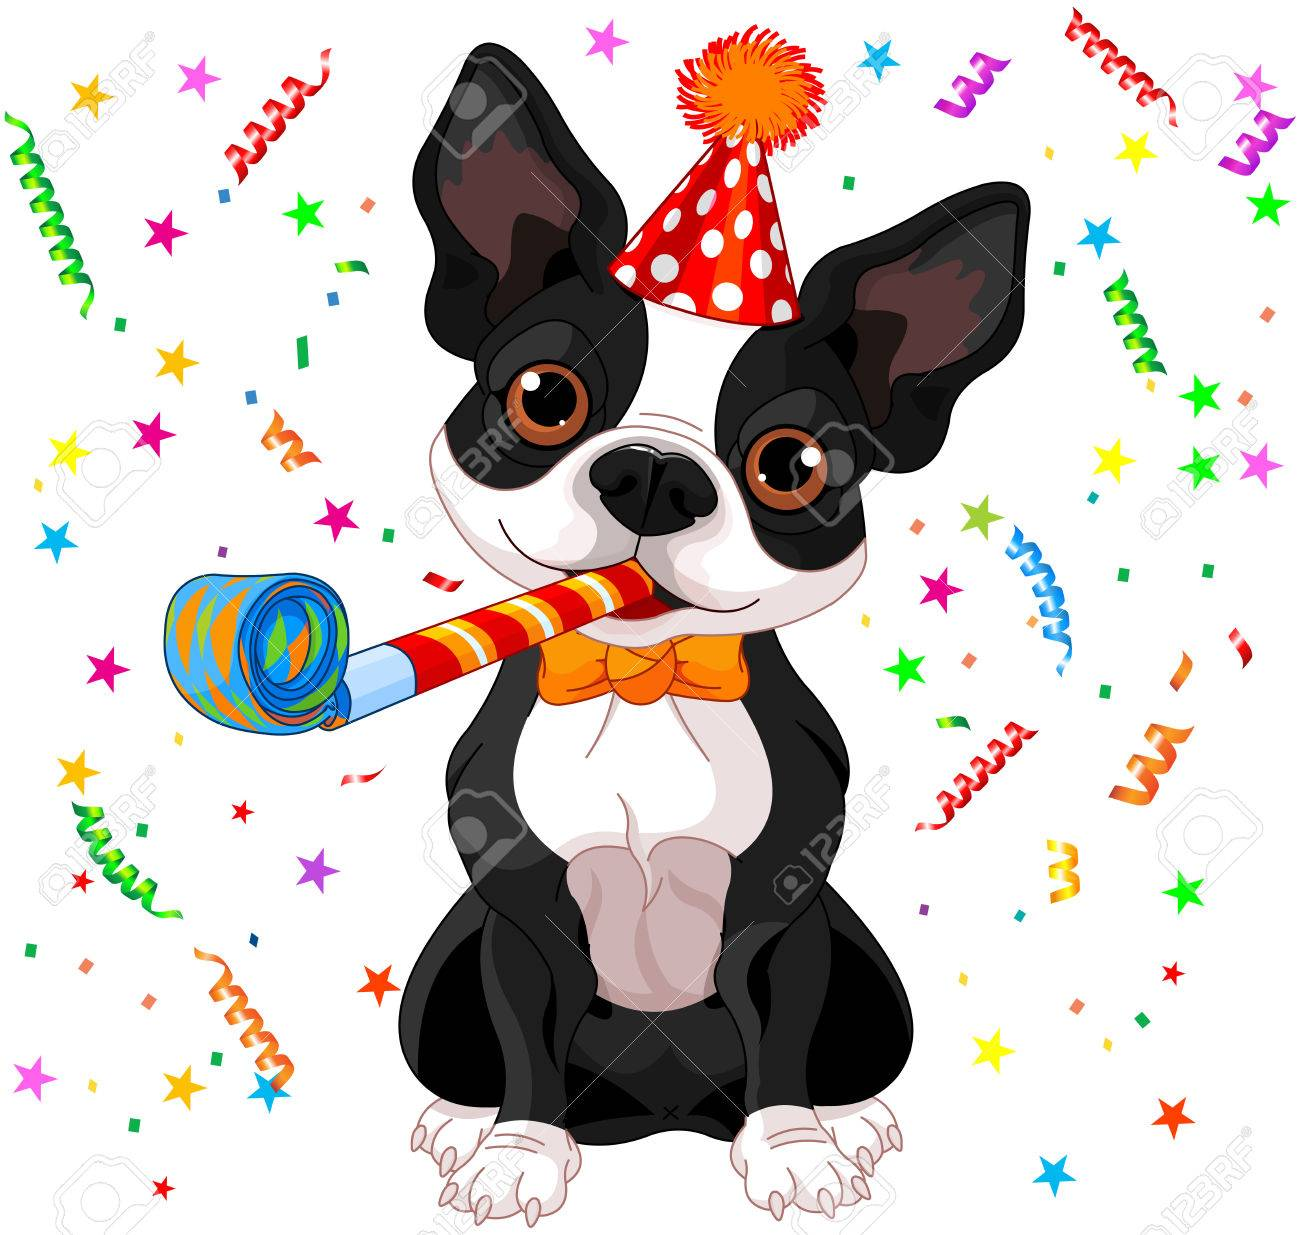 L'hydrothérapie - Page 2 35588778-illustration-of-cute-boston-terrier-celebrating